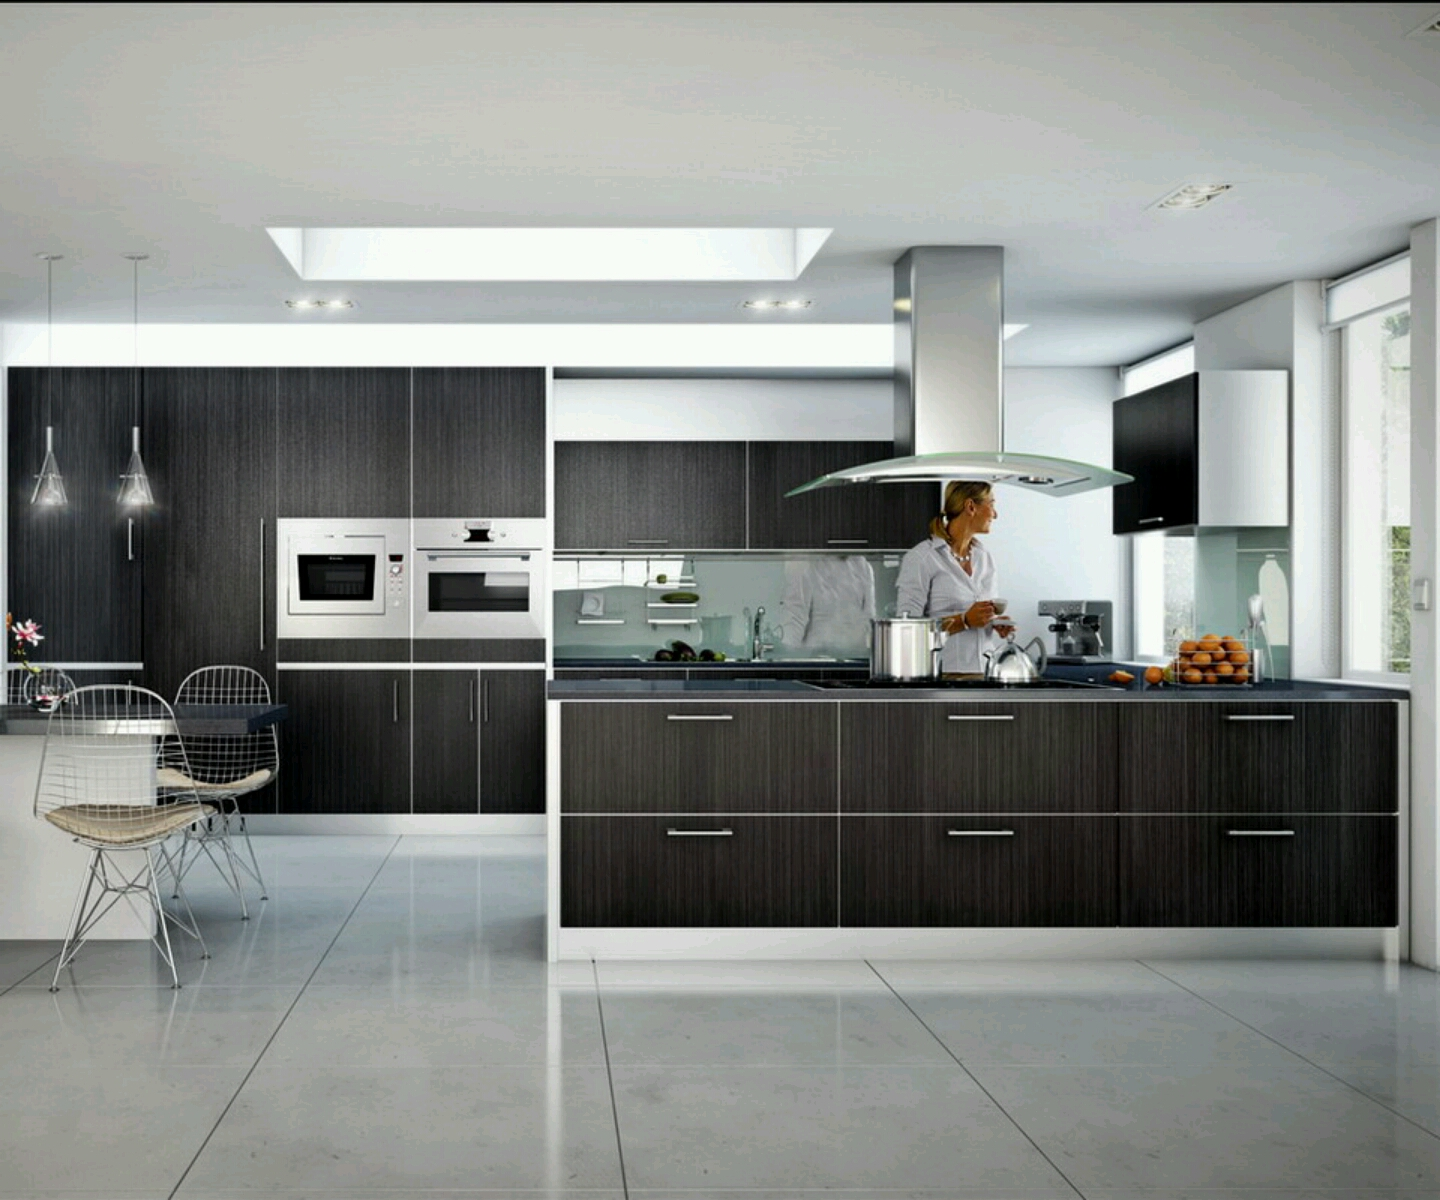 kitchen designing tips modern kitchen designs photo gallery decorating ideas 945